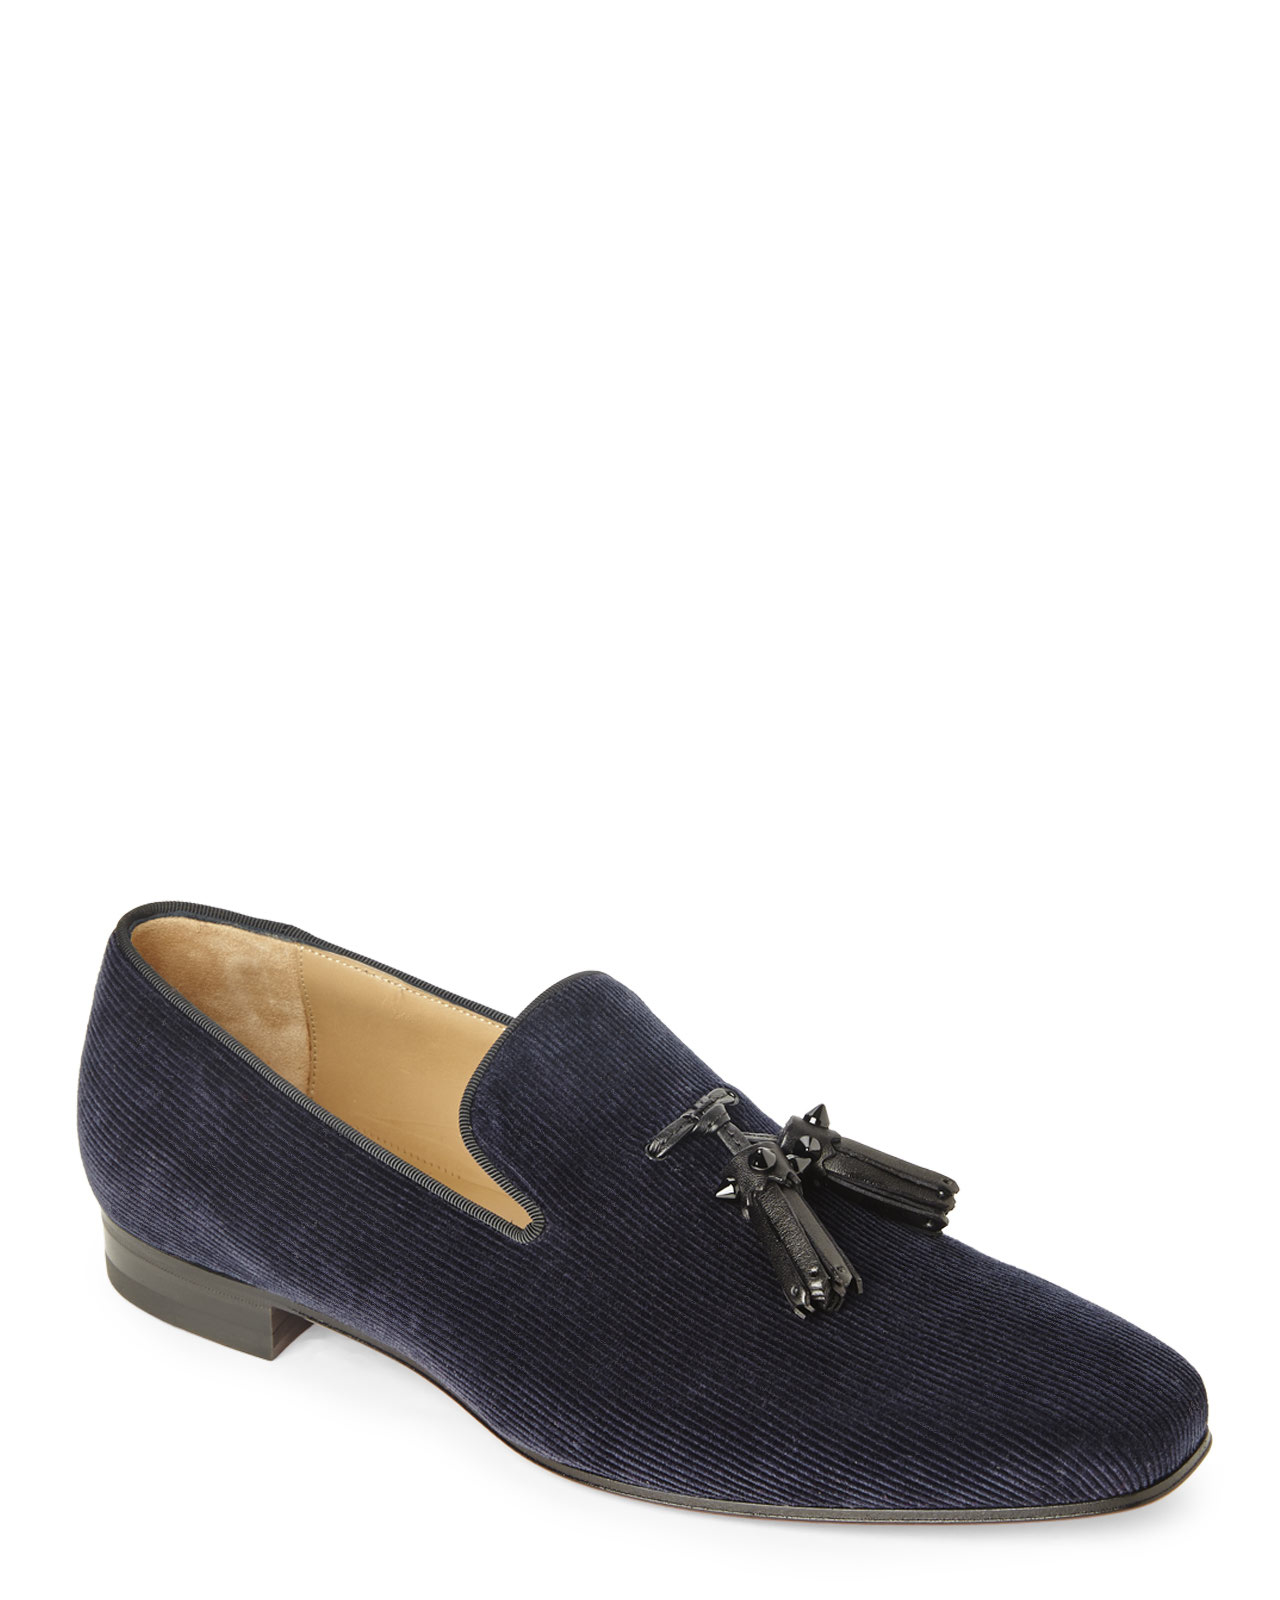 Lyst - Christian Louboutin Navy Dada Loafers in Blue for Men 2ffb3fa6274c